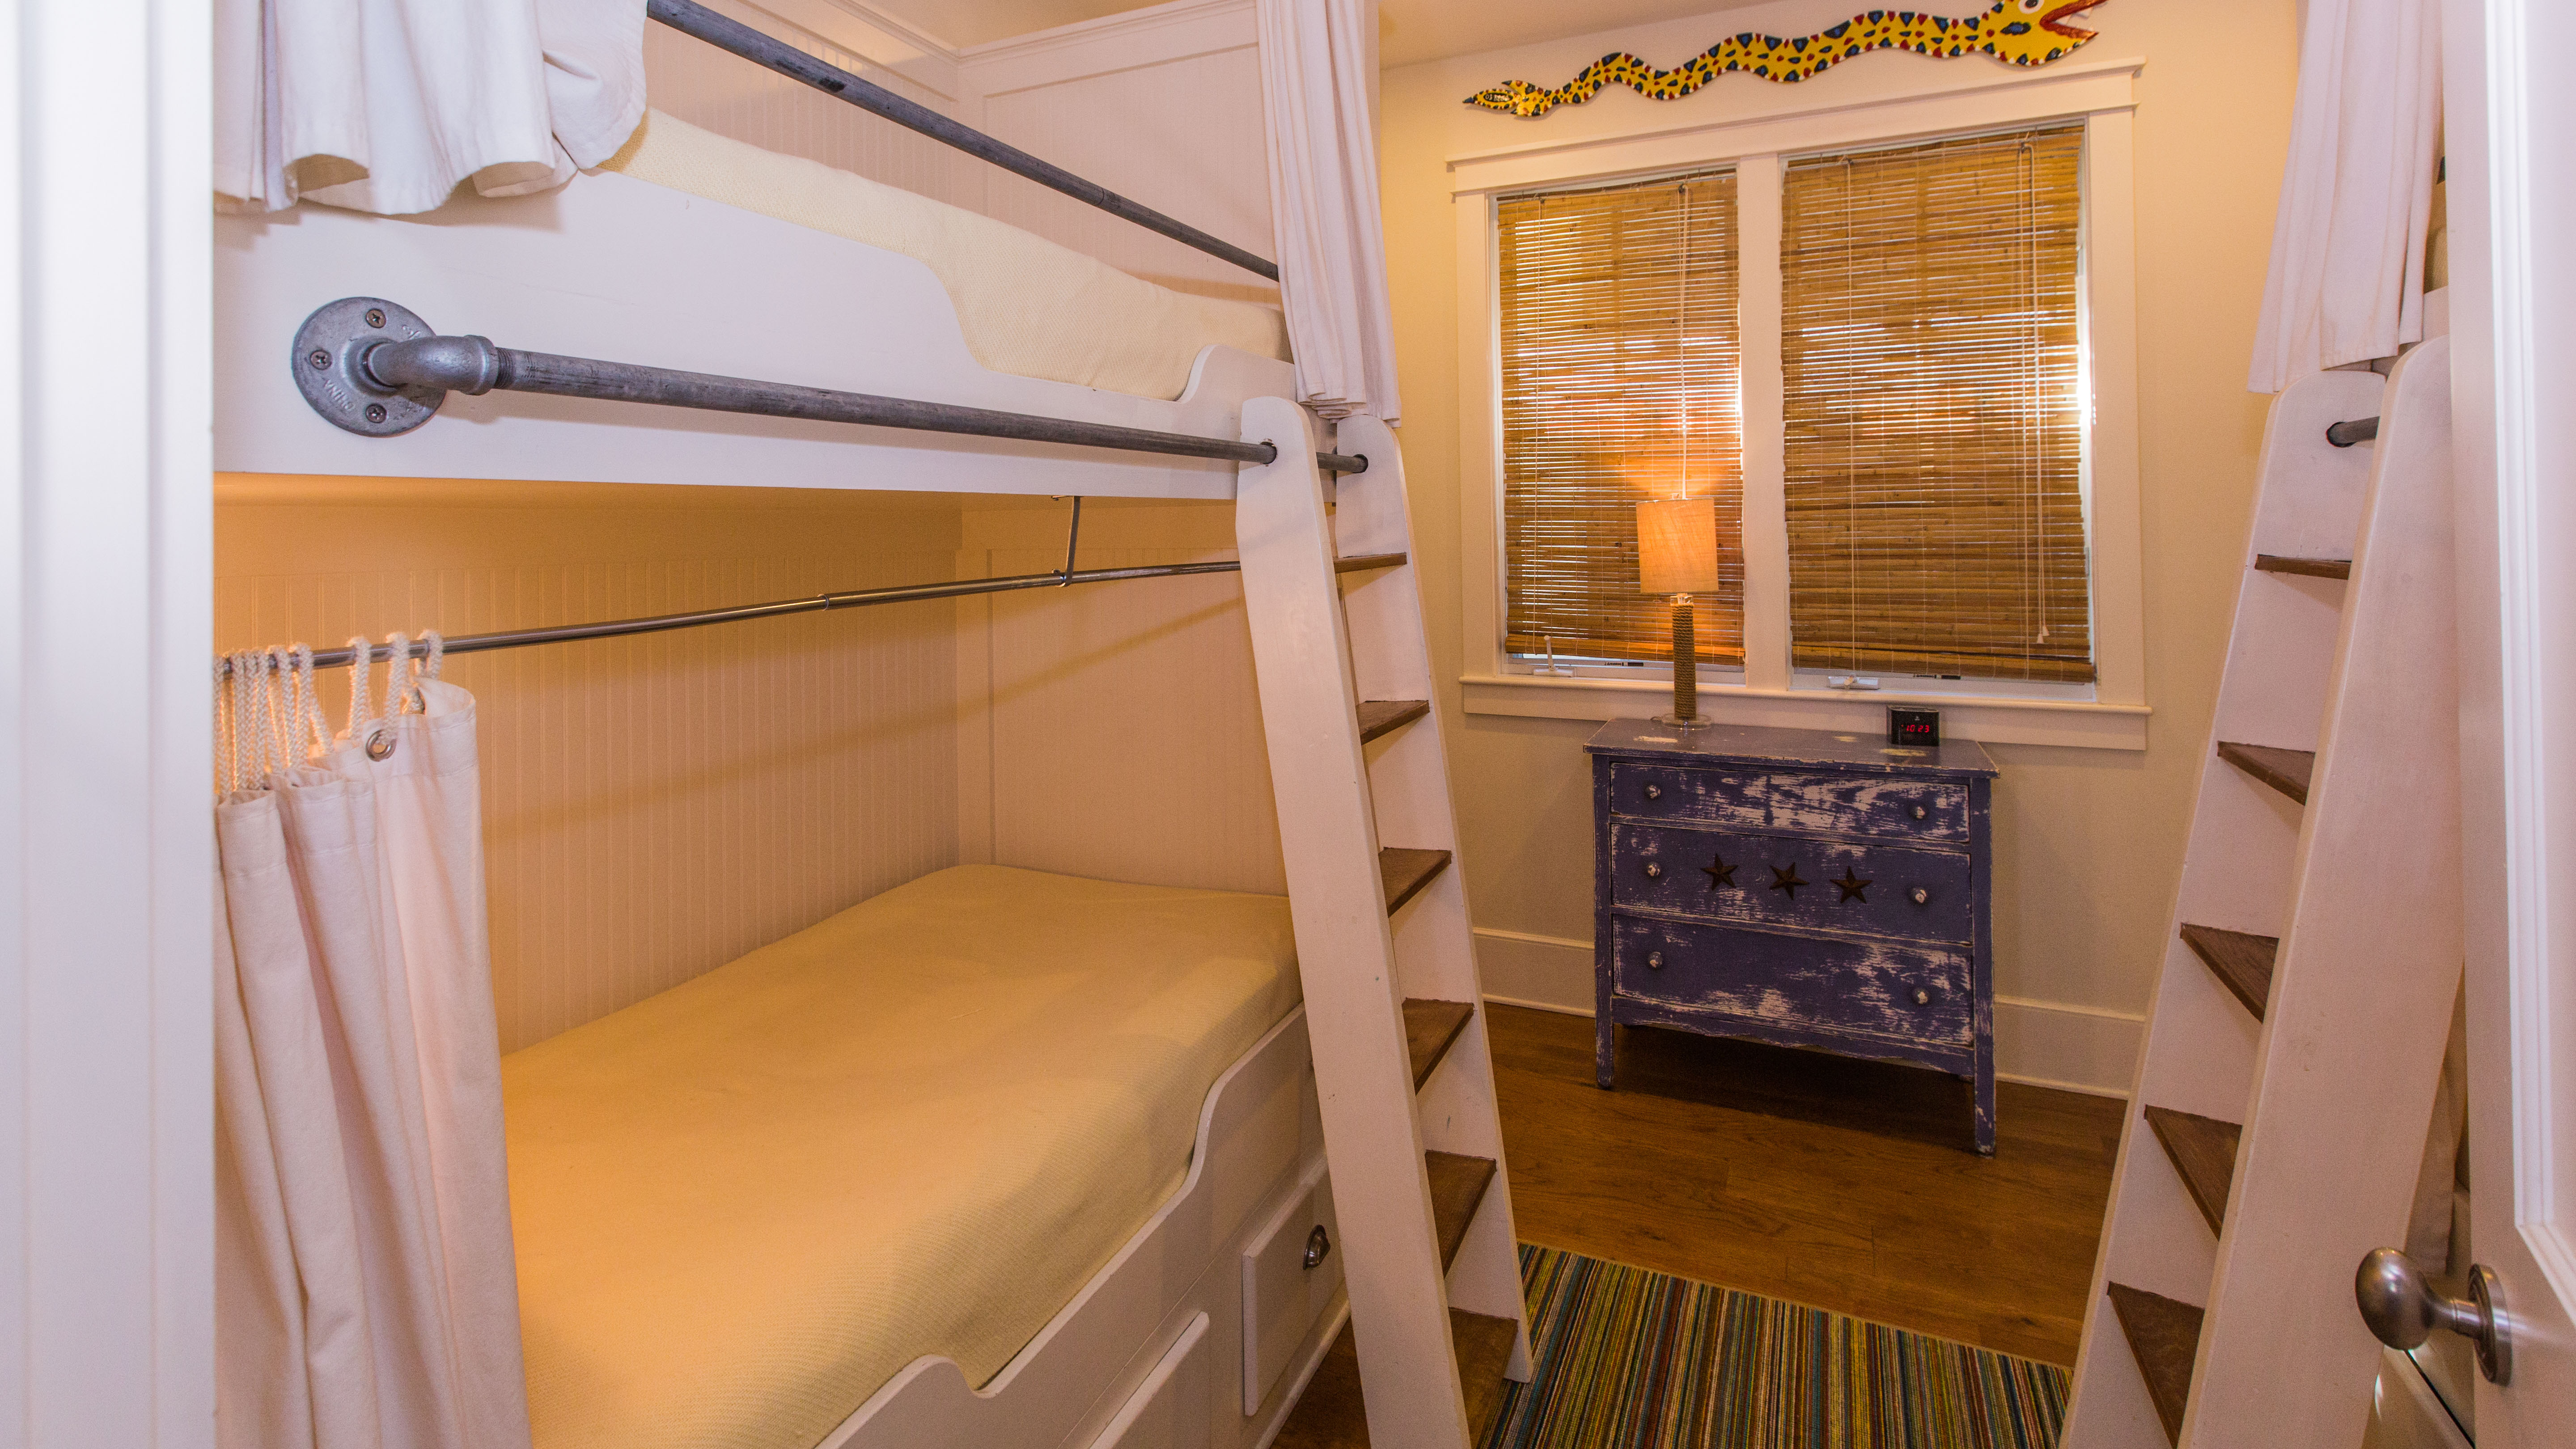 Four full sized twin beds with curtains